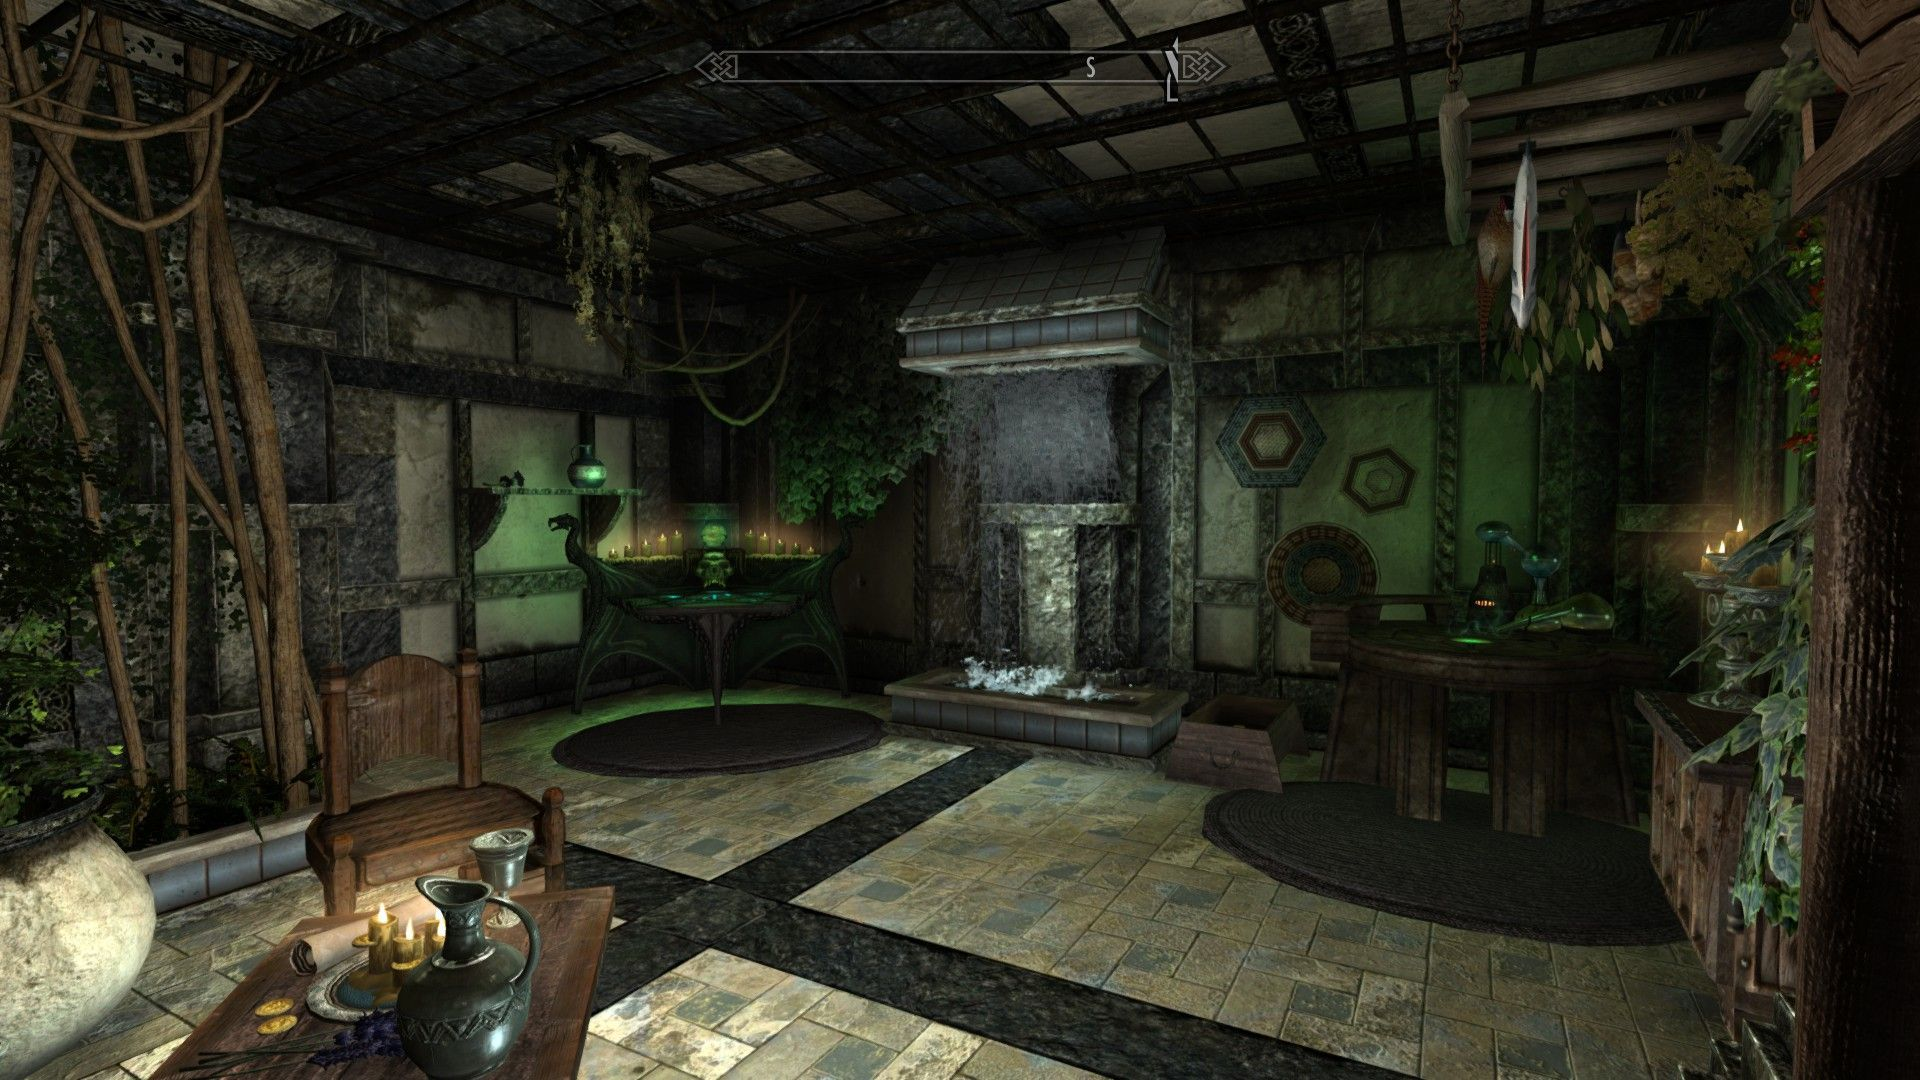 Alchemy room | Fantasy wizard, Skyrim mods, Skyrim